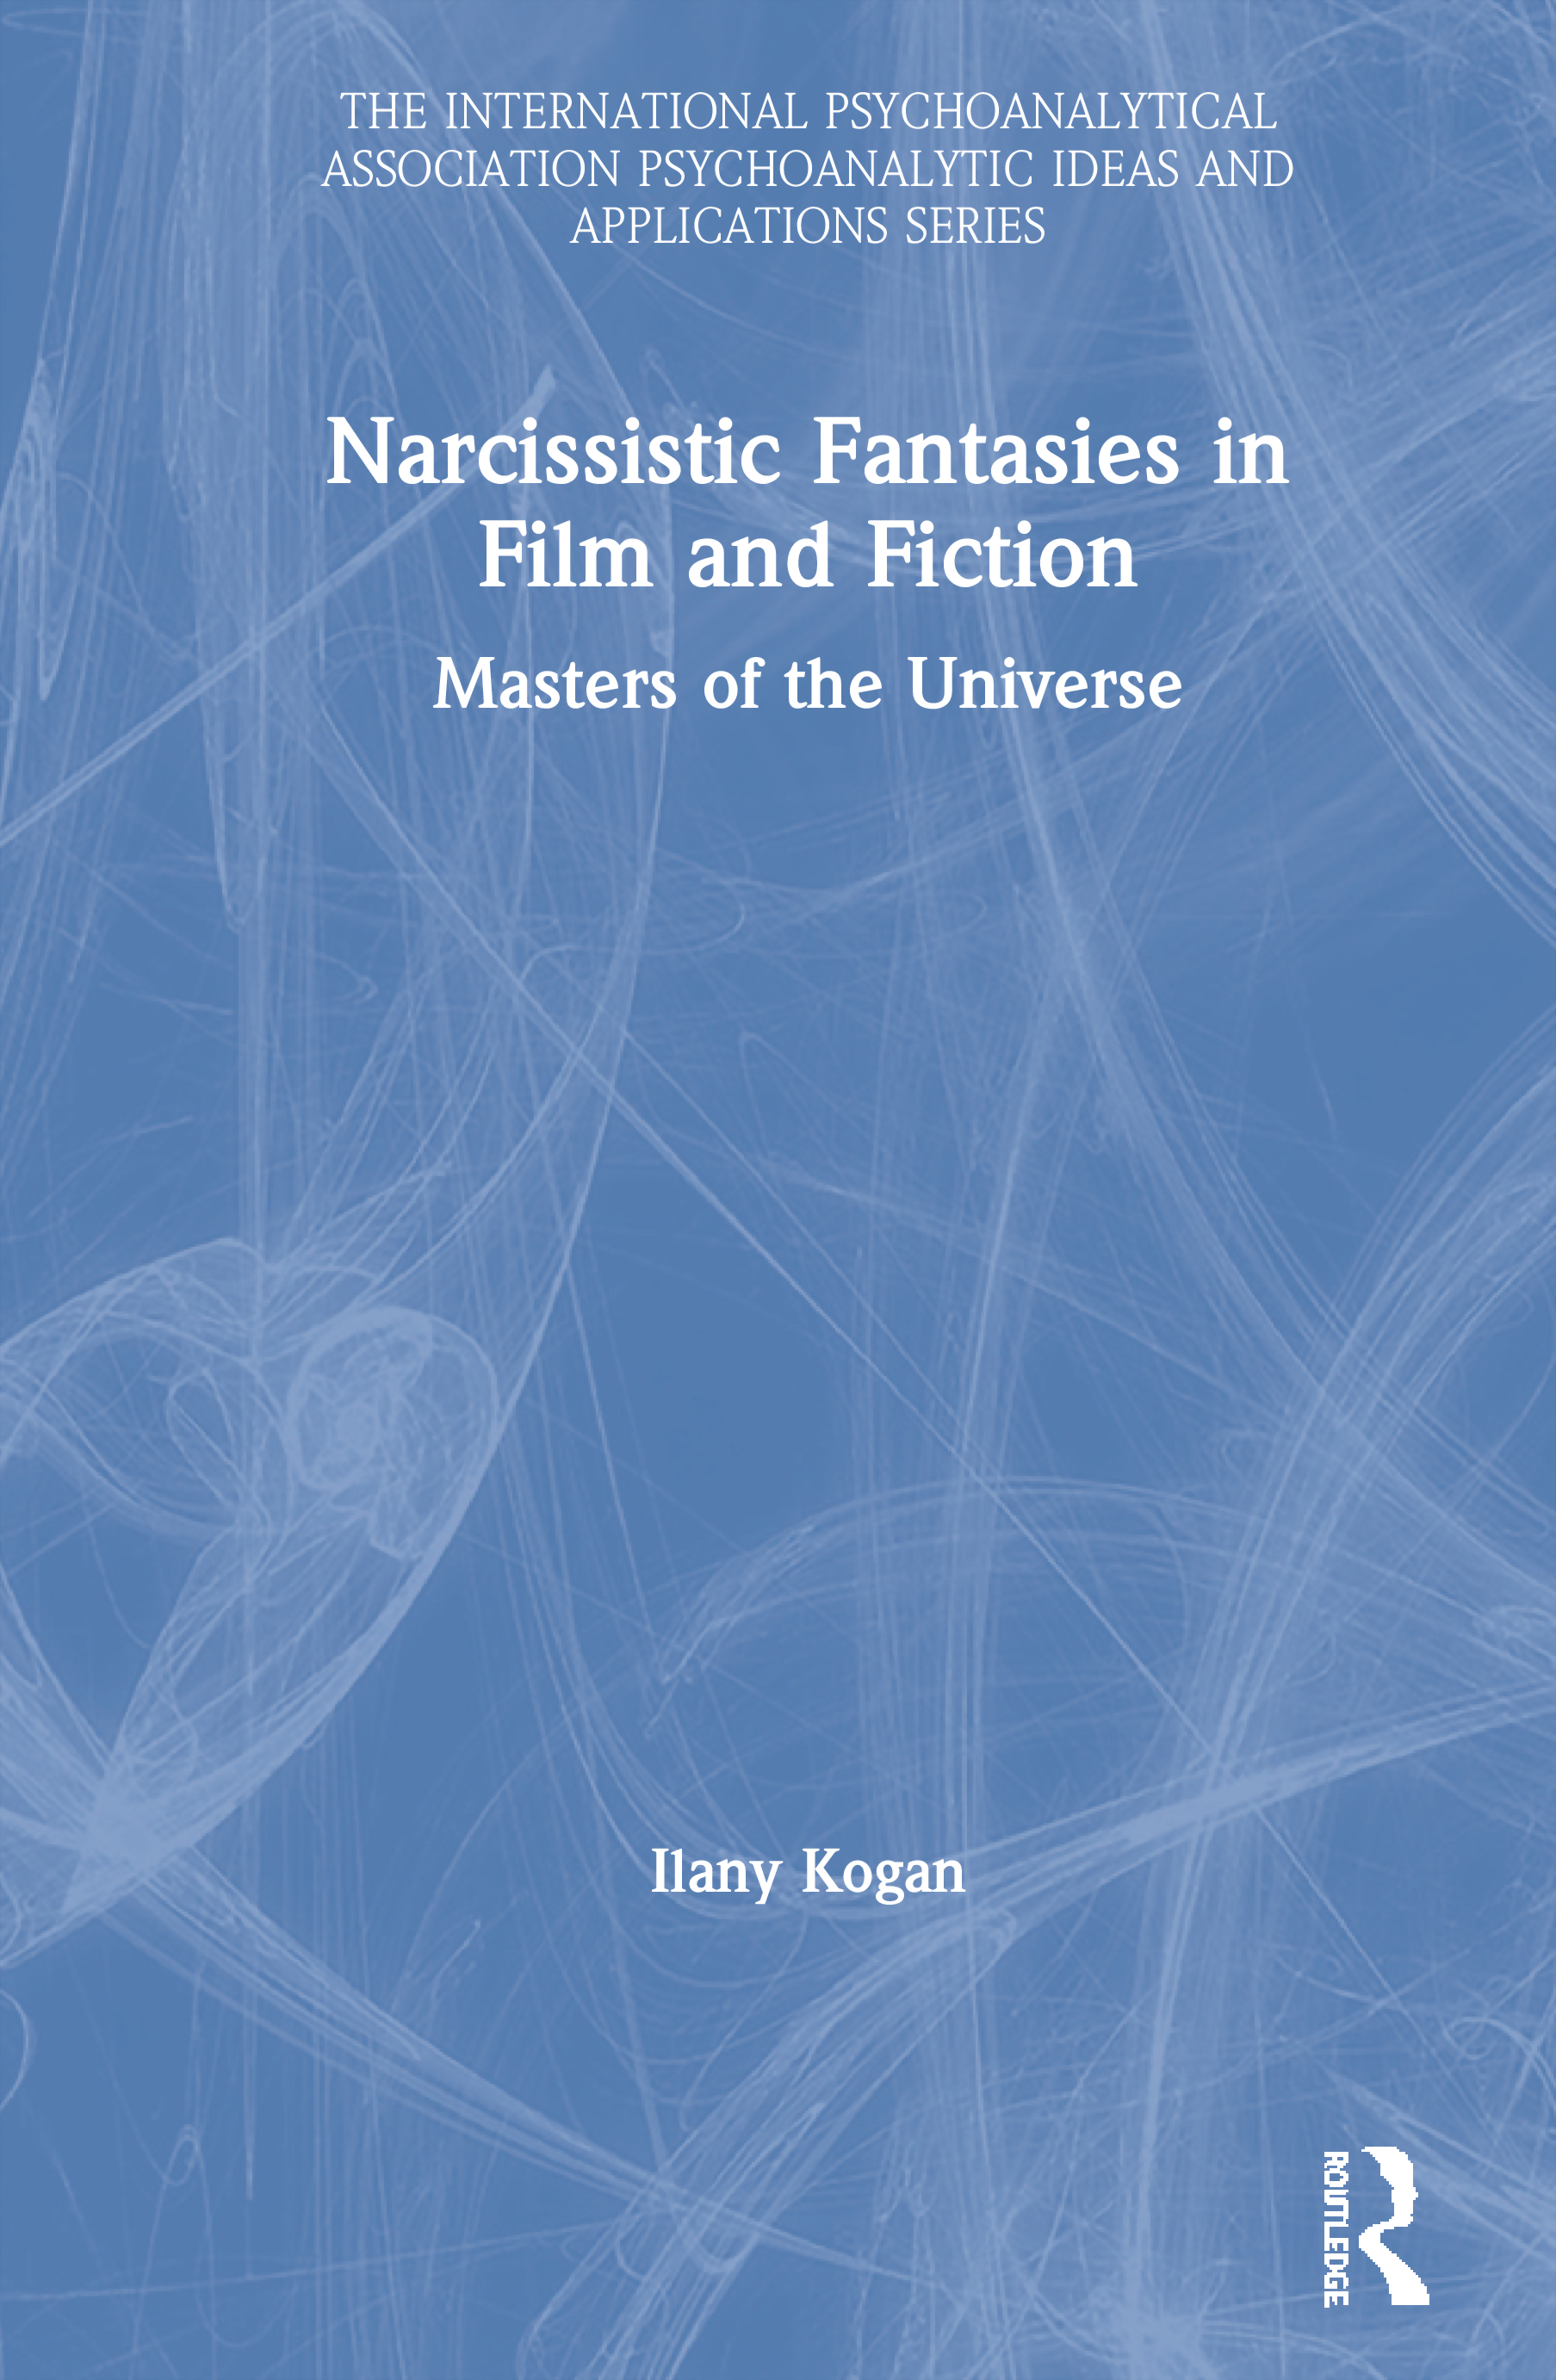 Narcissistic Fantasies in Film and Fiction: Masters of the Universe book cover